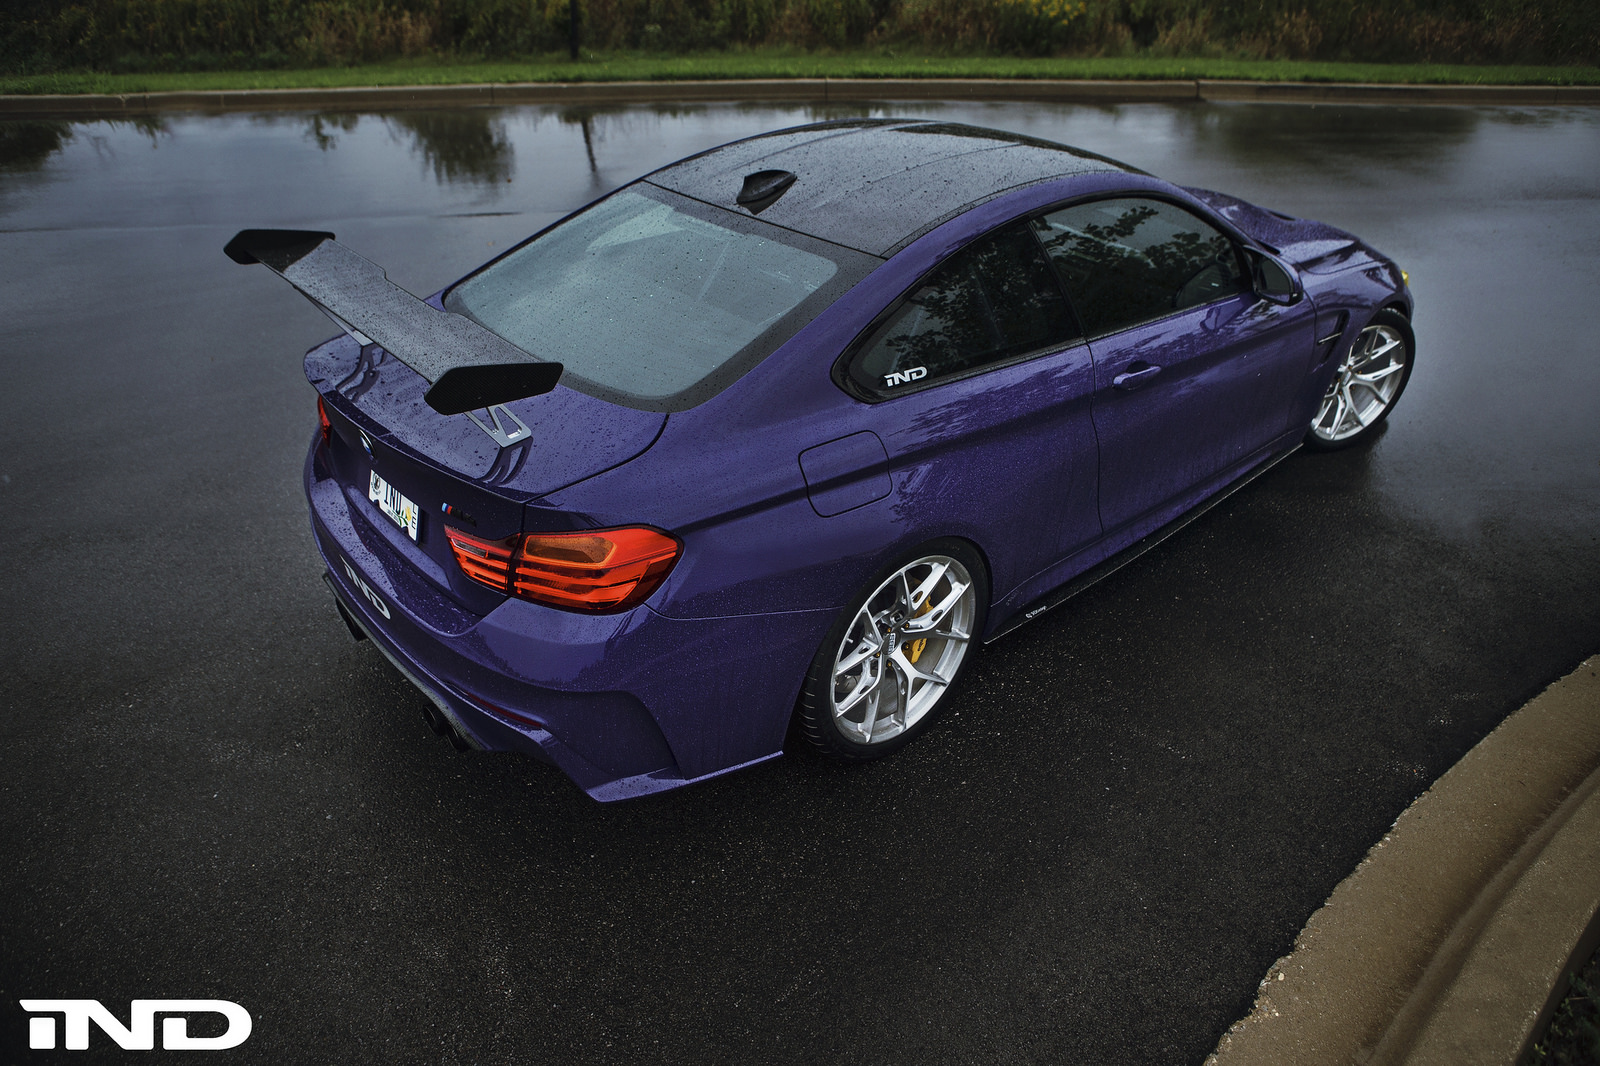 Utraviolet BMW M4 Project By IND Distribution Gets A Sick Photoshoot 8